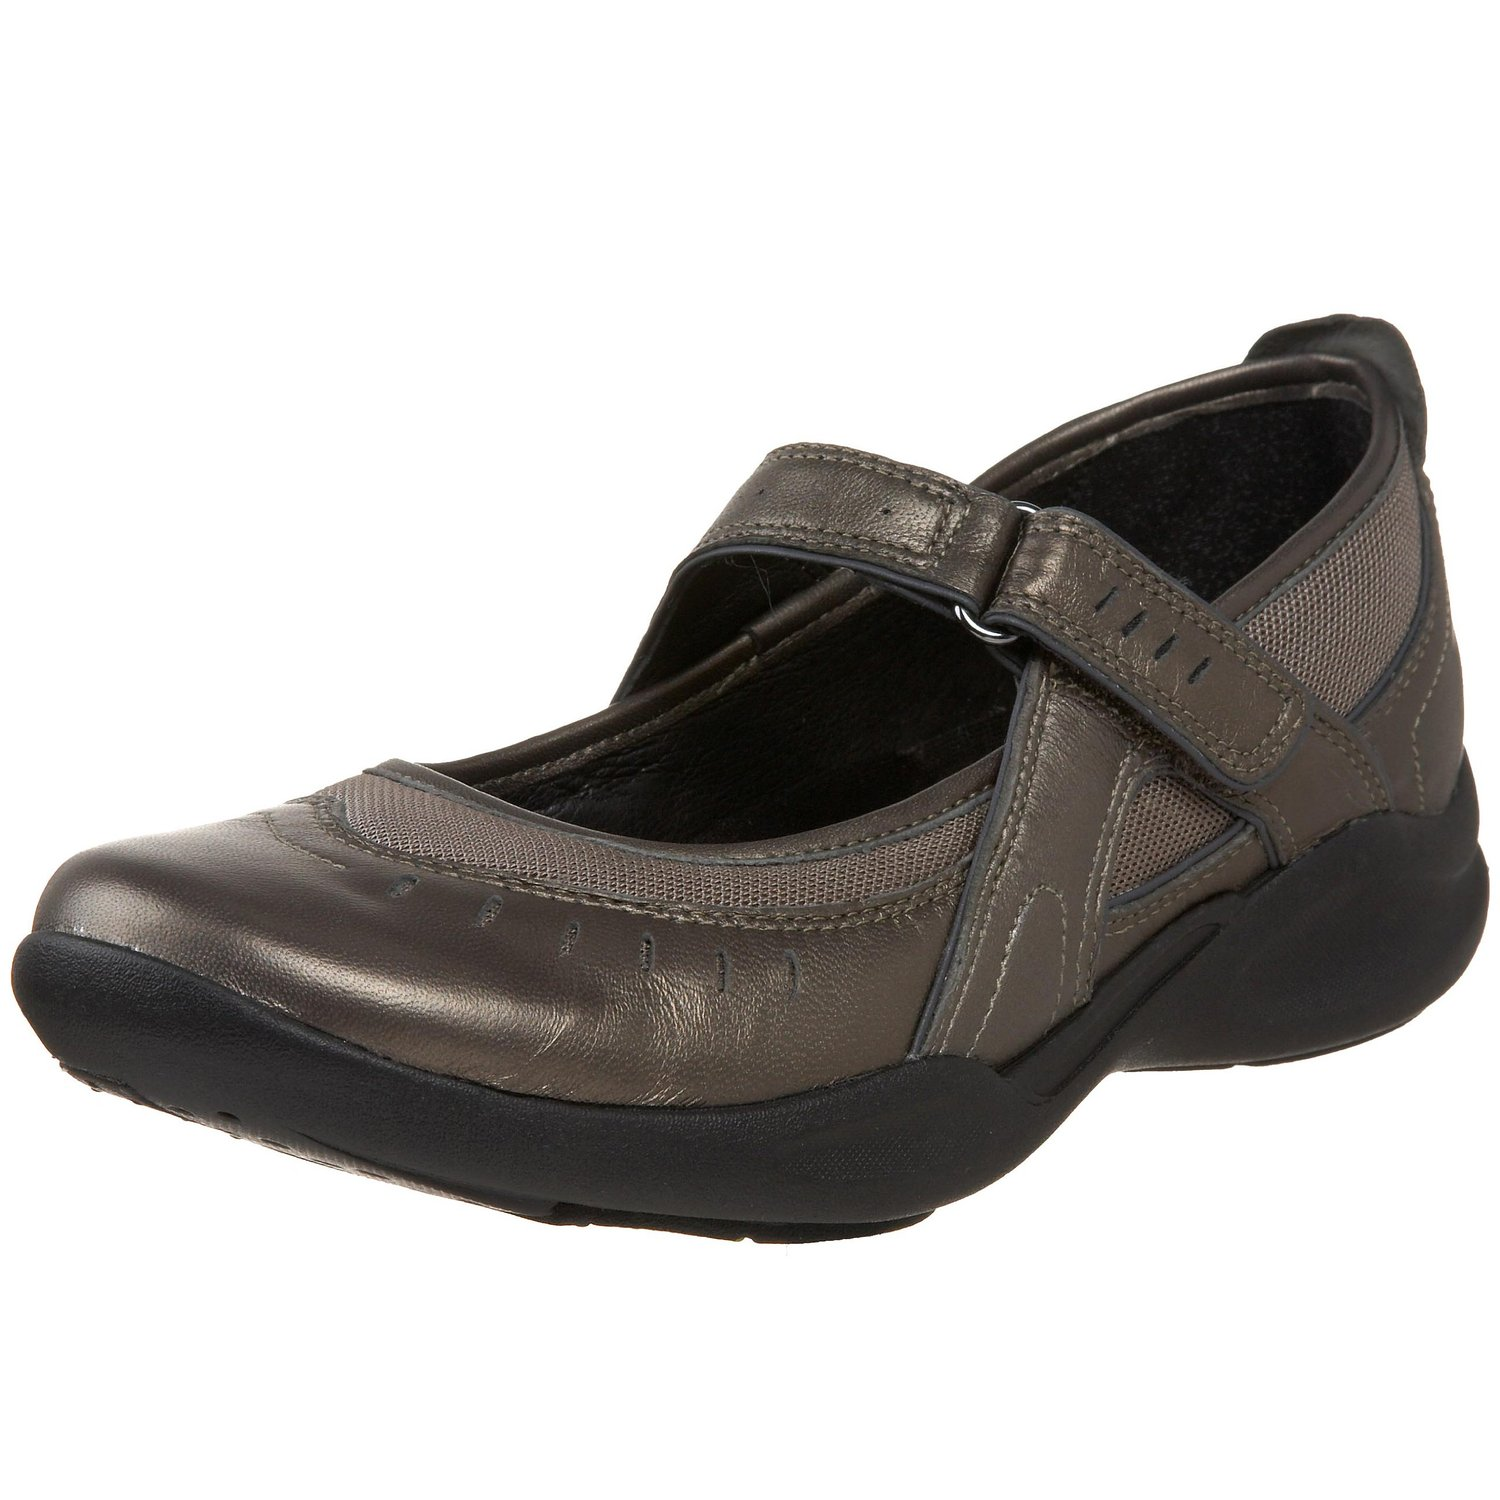 Clarks Wave Cruise Mary Jane Flat